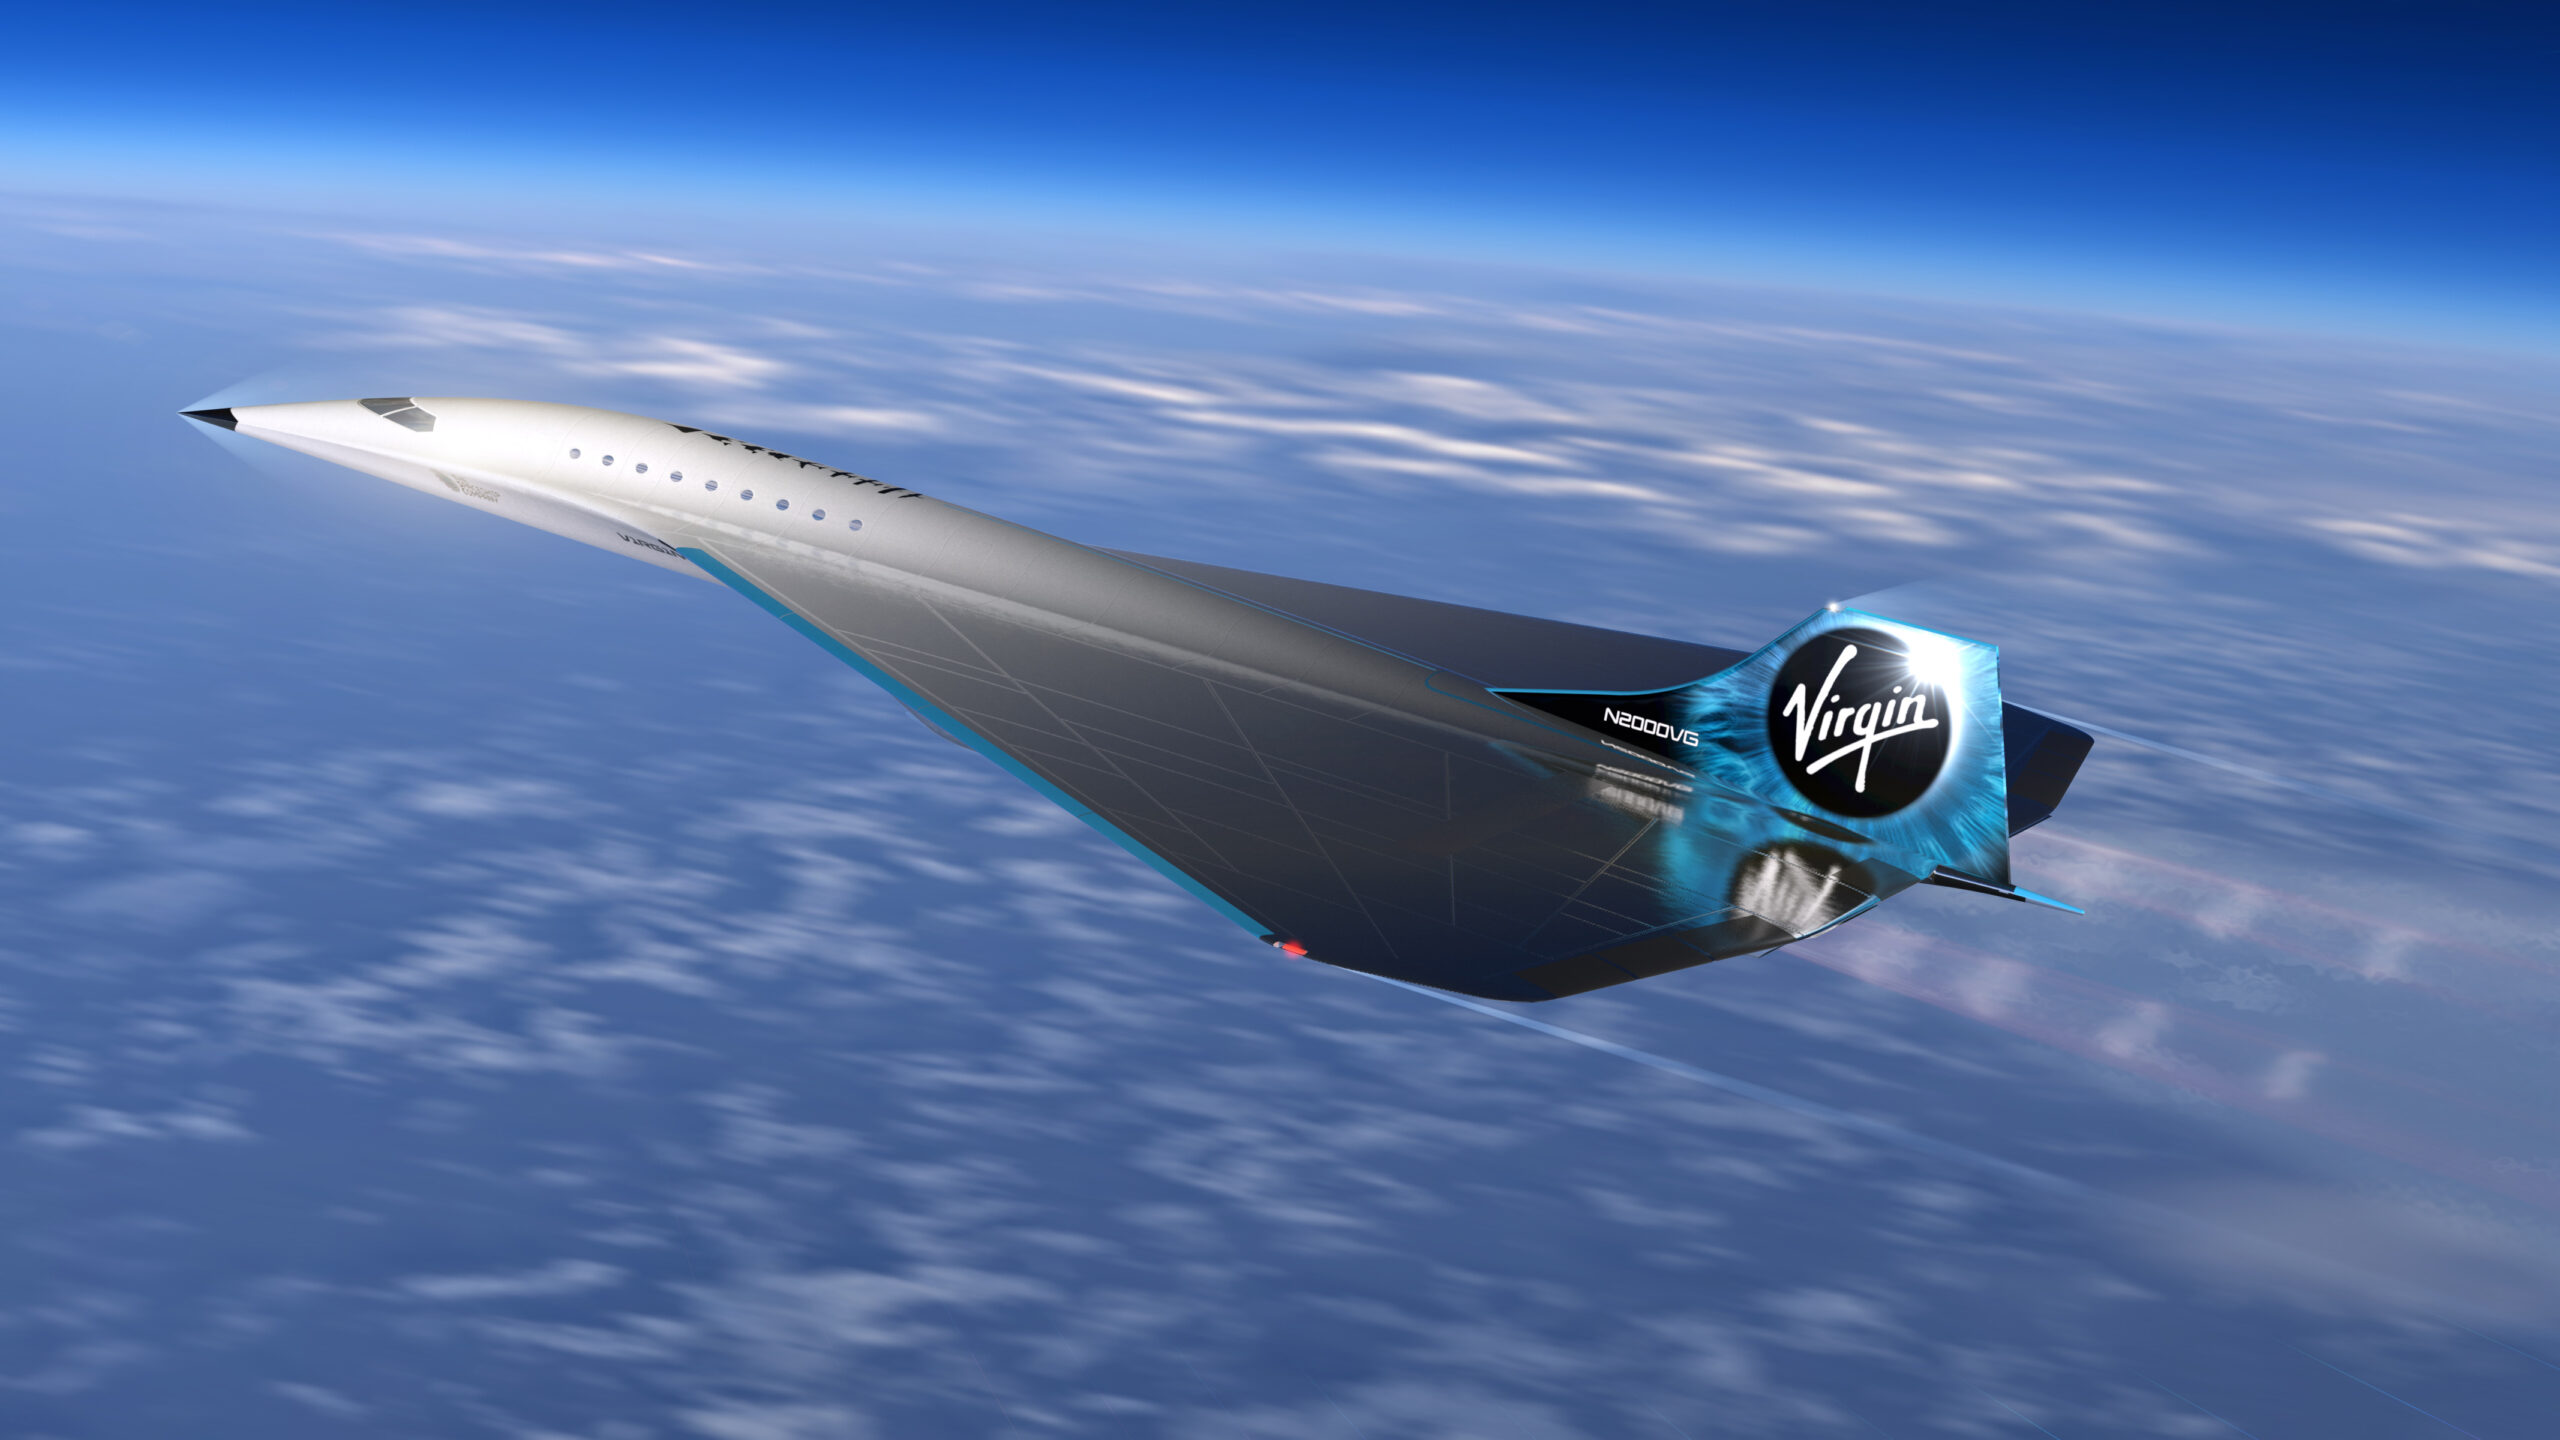 Virgin Galactic Unveils Mach 3 Aircraft Design for High Speed Travel Image 5